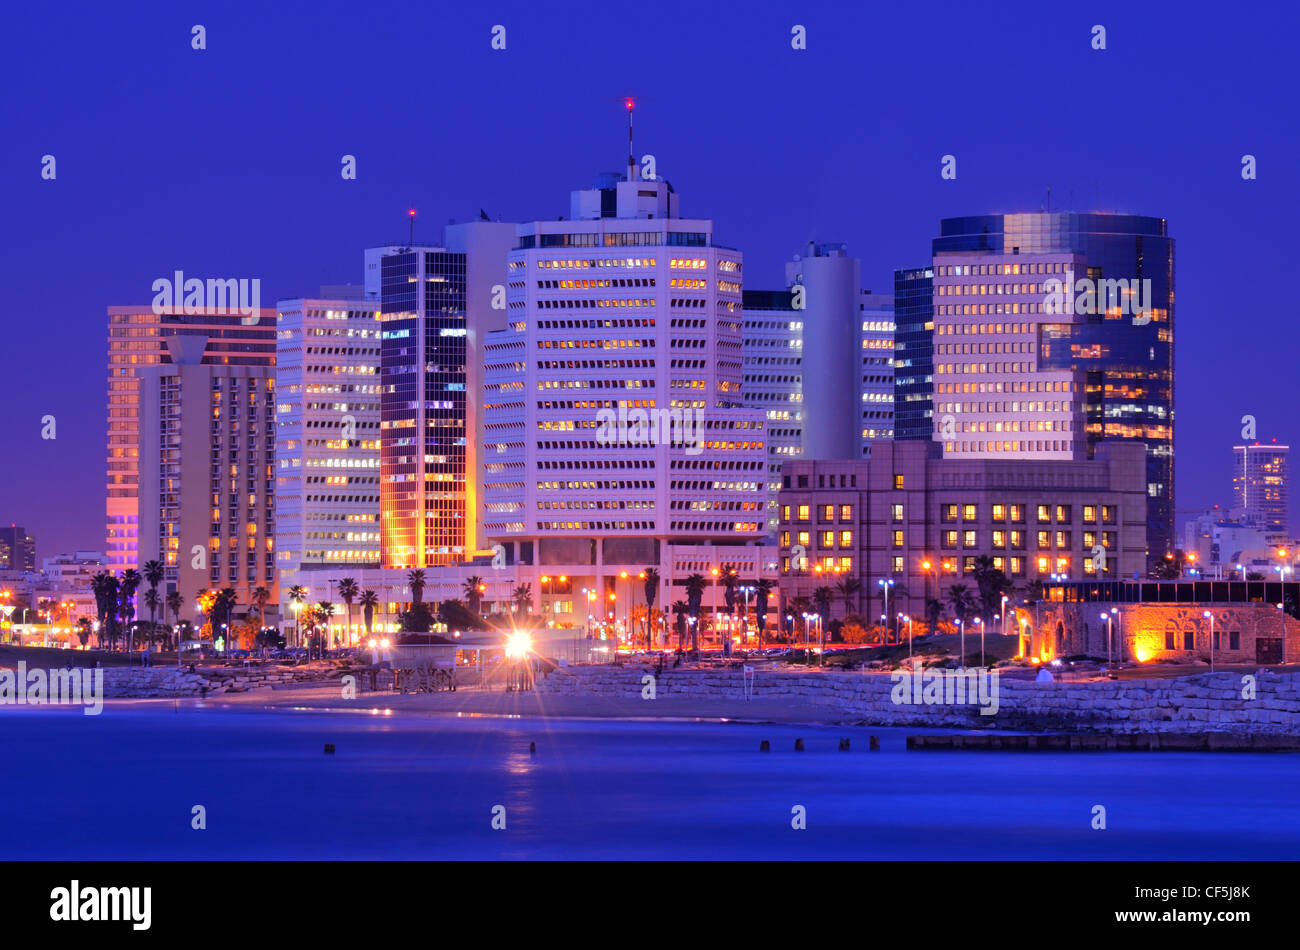 Skyline of Tel Aviv, Israel along the Mediterranean coast. - Stock Image